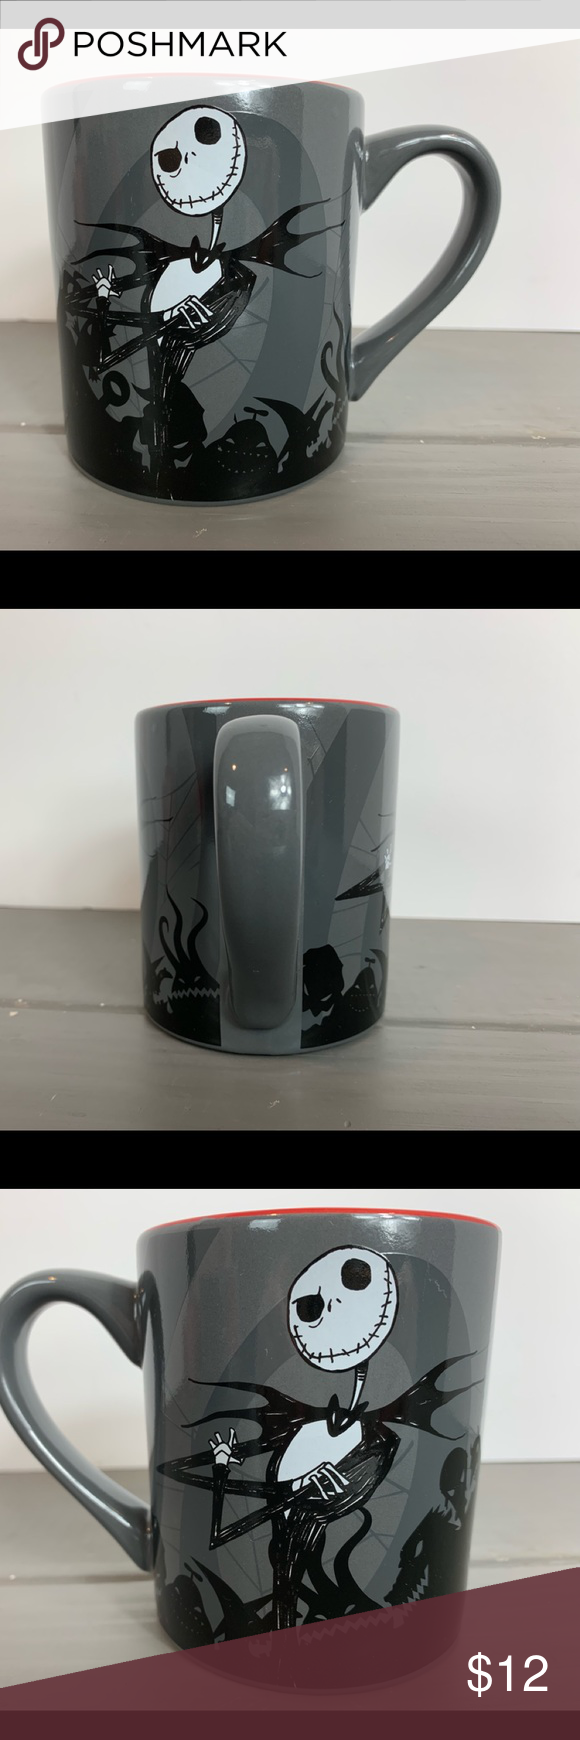 Jack Skellington Coffee Mug NWOT Disney The Nightmare Before Christmas Jack Skellington 14 ounce coffee mug. New without tags, never used. Dishwasher and microwave safe. Smoke free home. Fast shipping!  Tags: jack, sally, skeleton, halloween, Disney, coffee cup, tea cup, mug, cup, fall, seasonal, pumpkin, pumpkin spice silver buffalo Kitchen Coffee & Tea Accessories #disneycoffeemugs